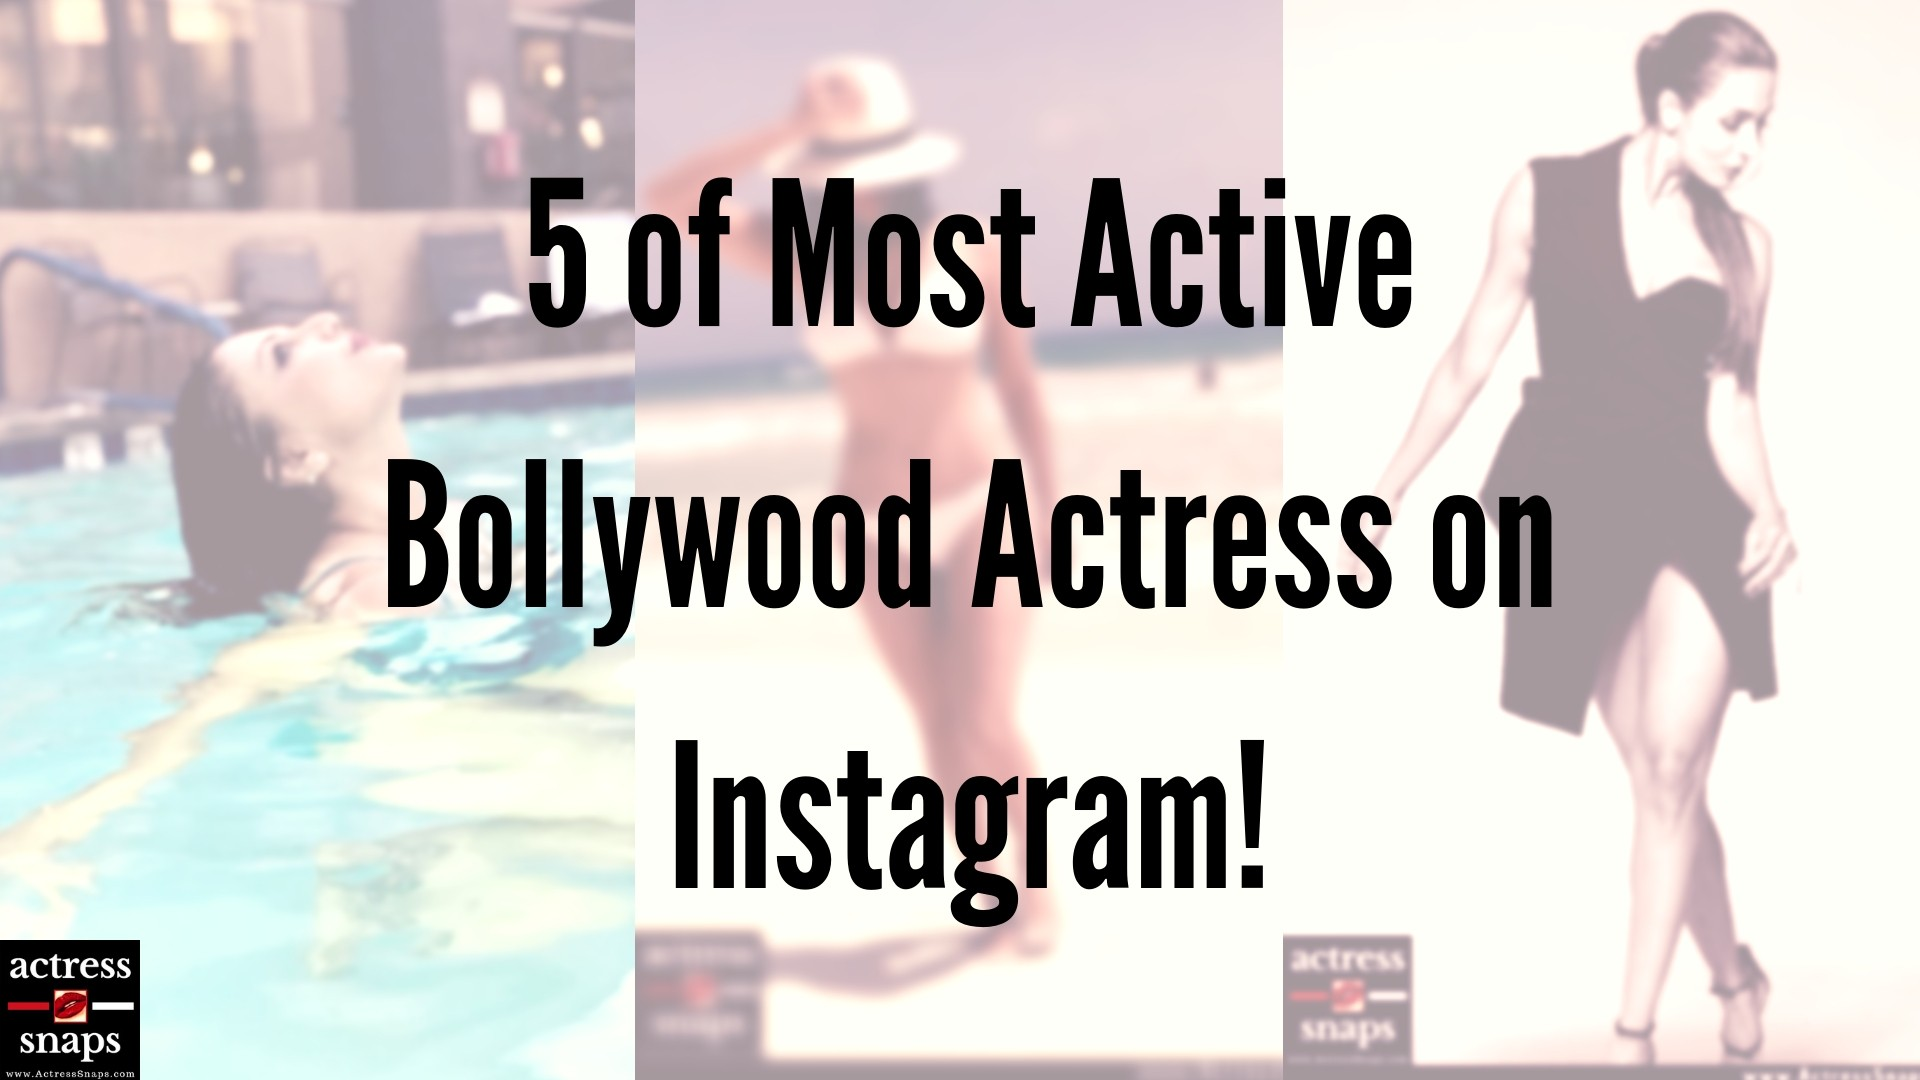 5 of Most Wonderful Mature Bollywood Actress on Instagram - Sexy Actress Pictures | Hot Actress Pictures - ActressSnaps.com